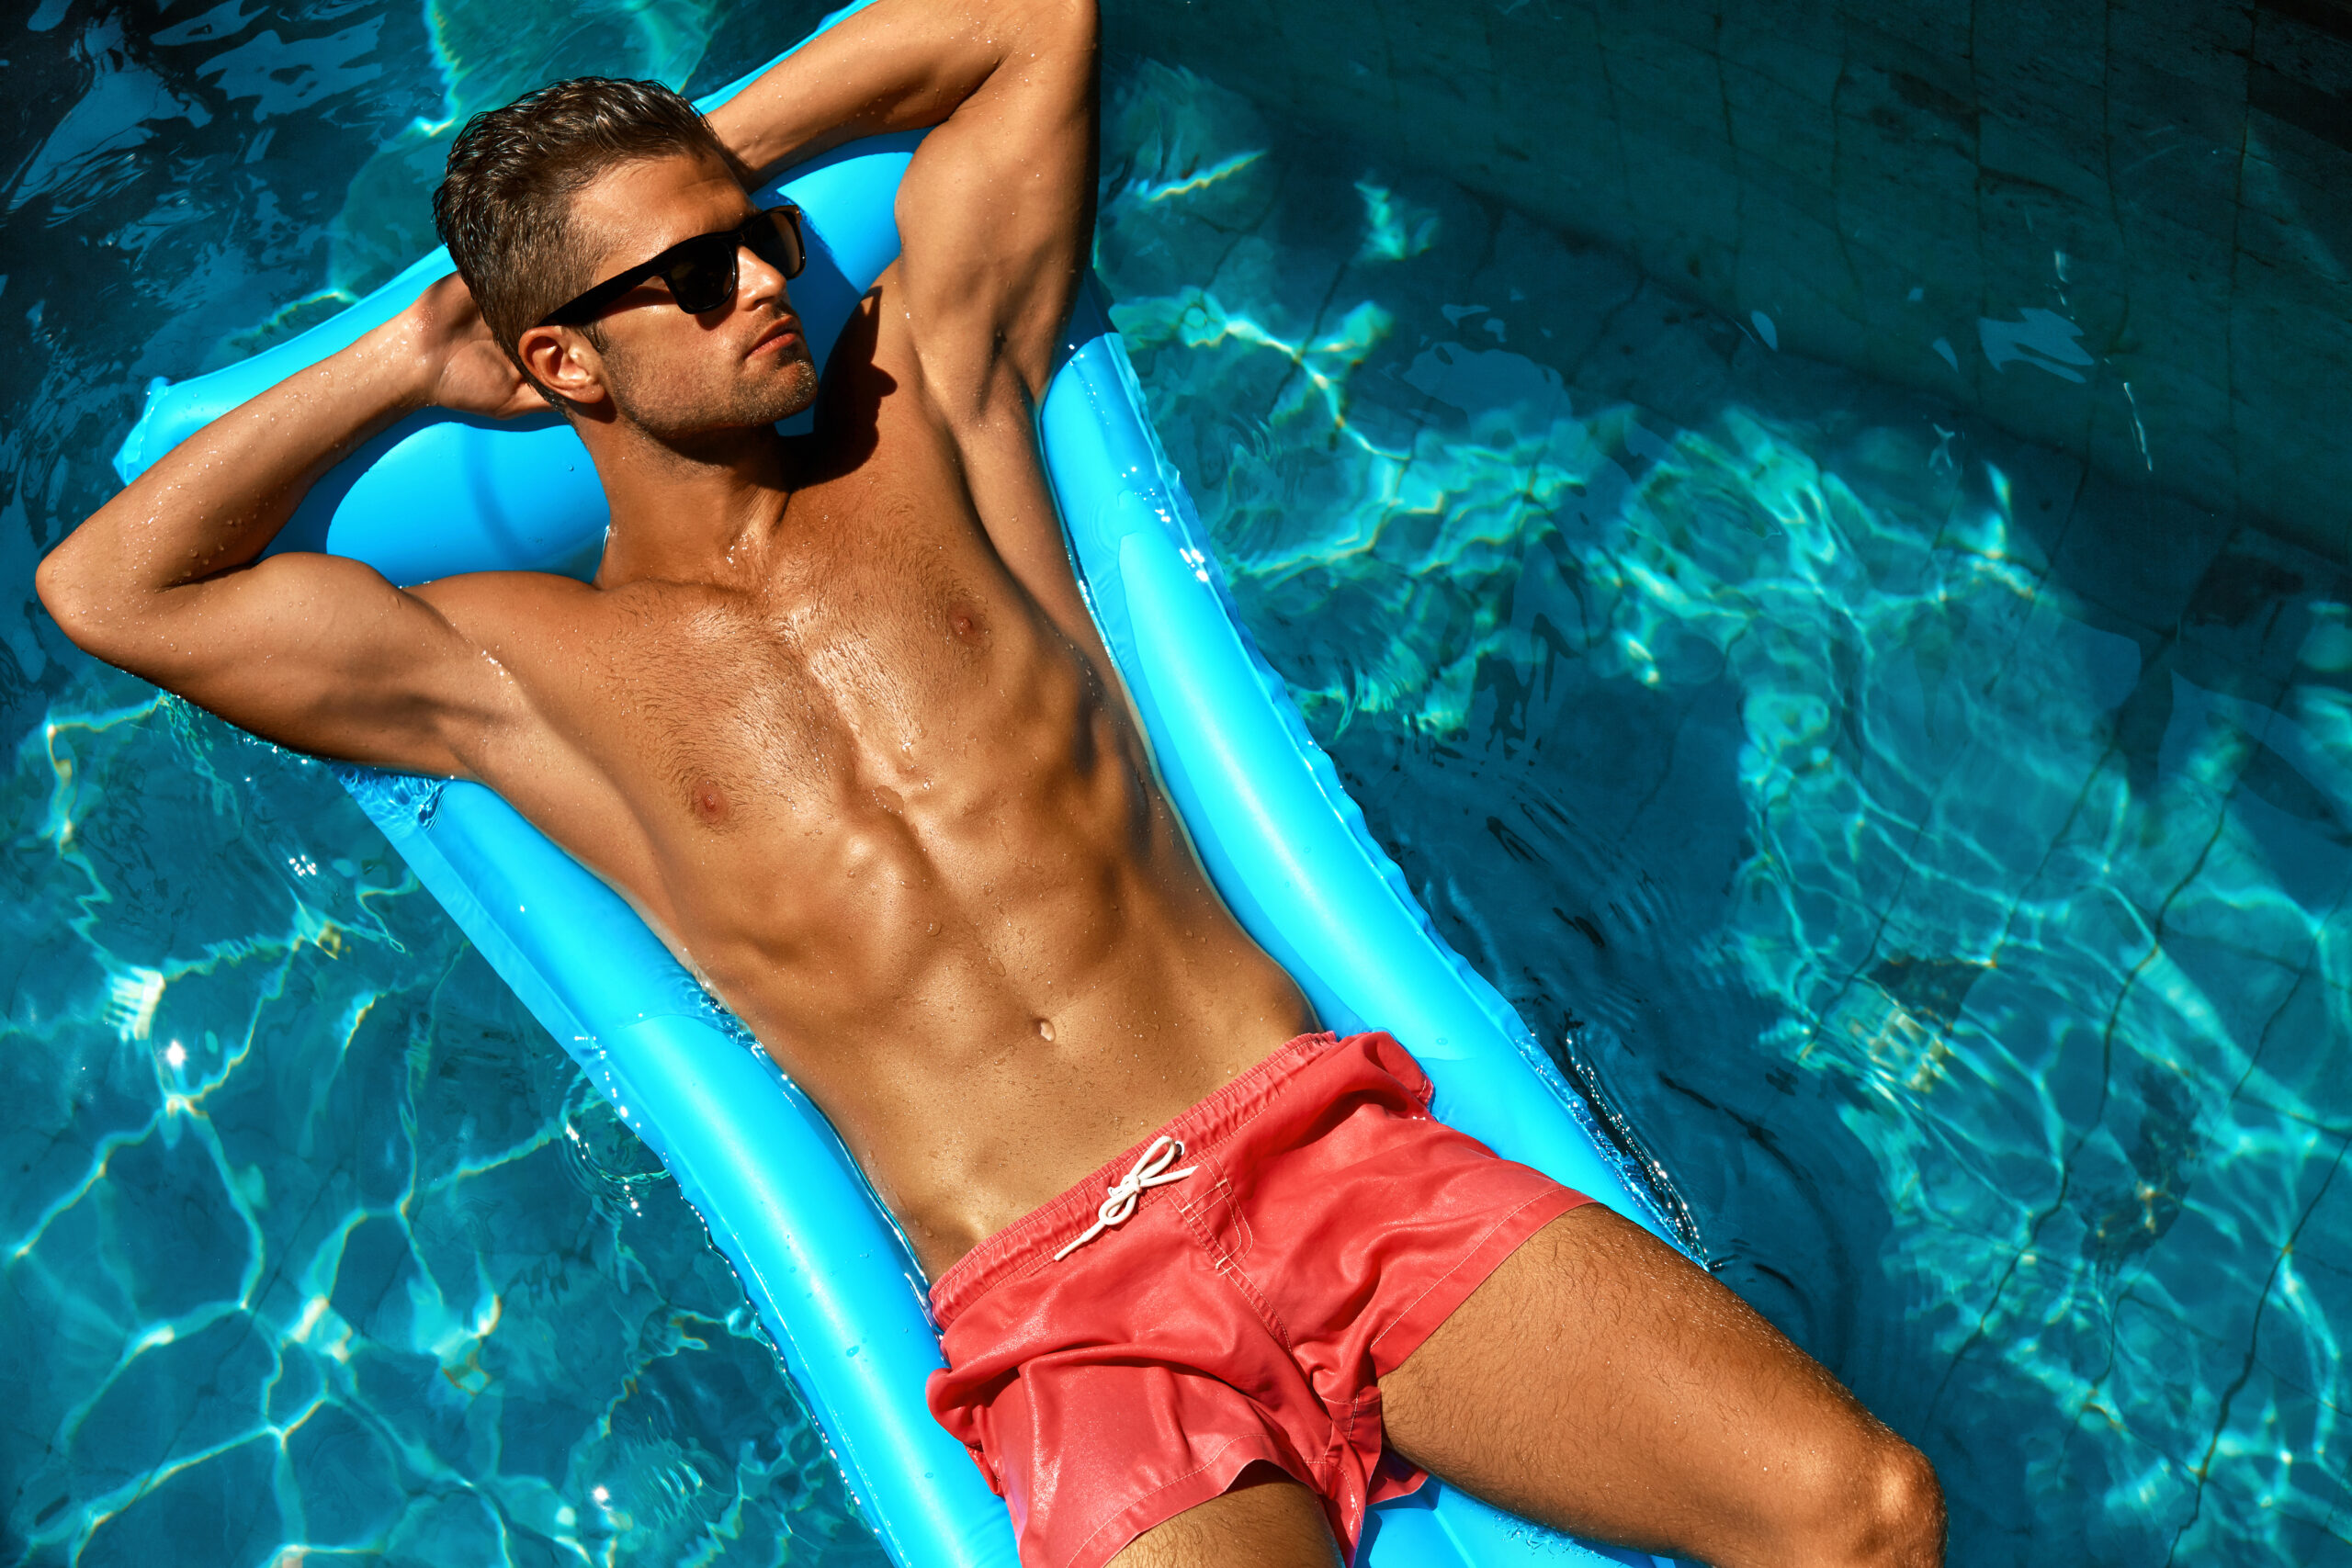 Shirtless man at a Pool